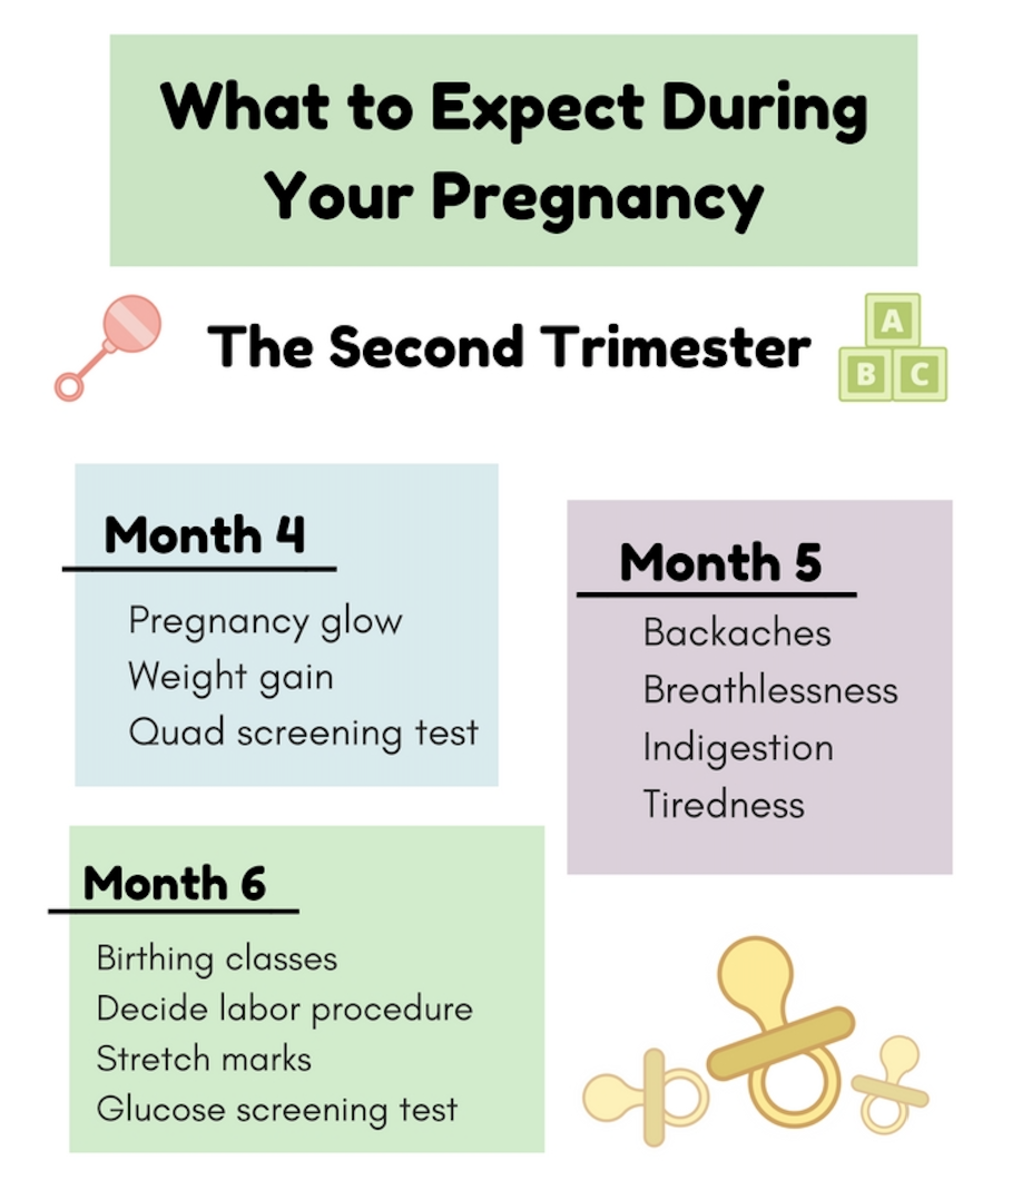 What to Expect During Your Pregnancy During the Second Trimester